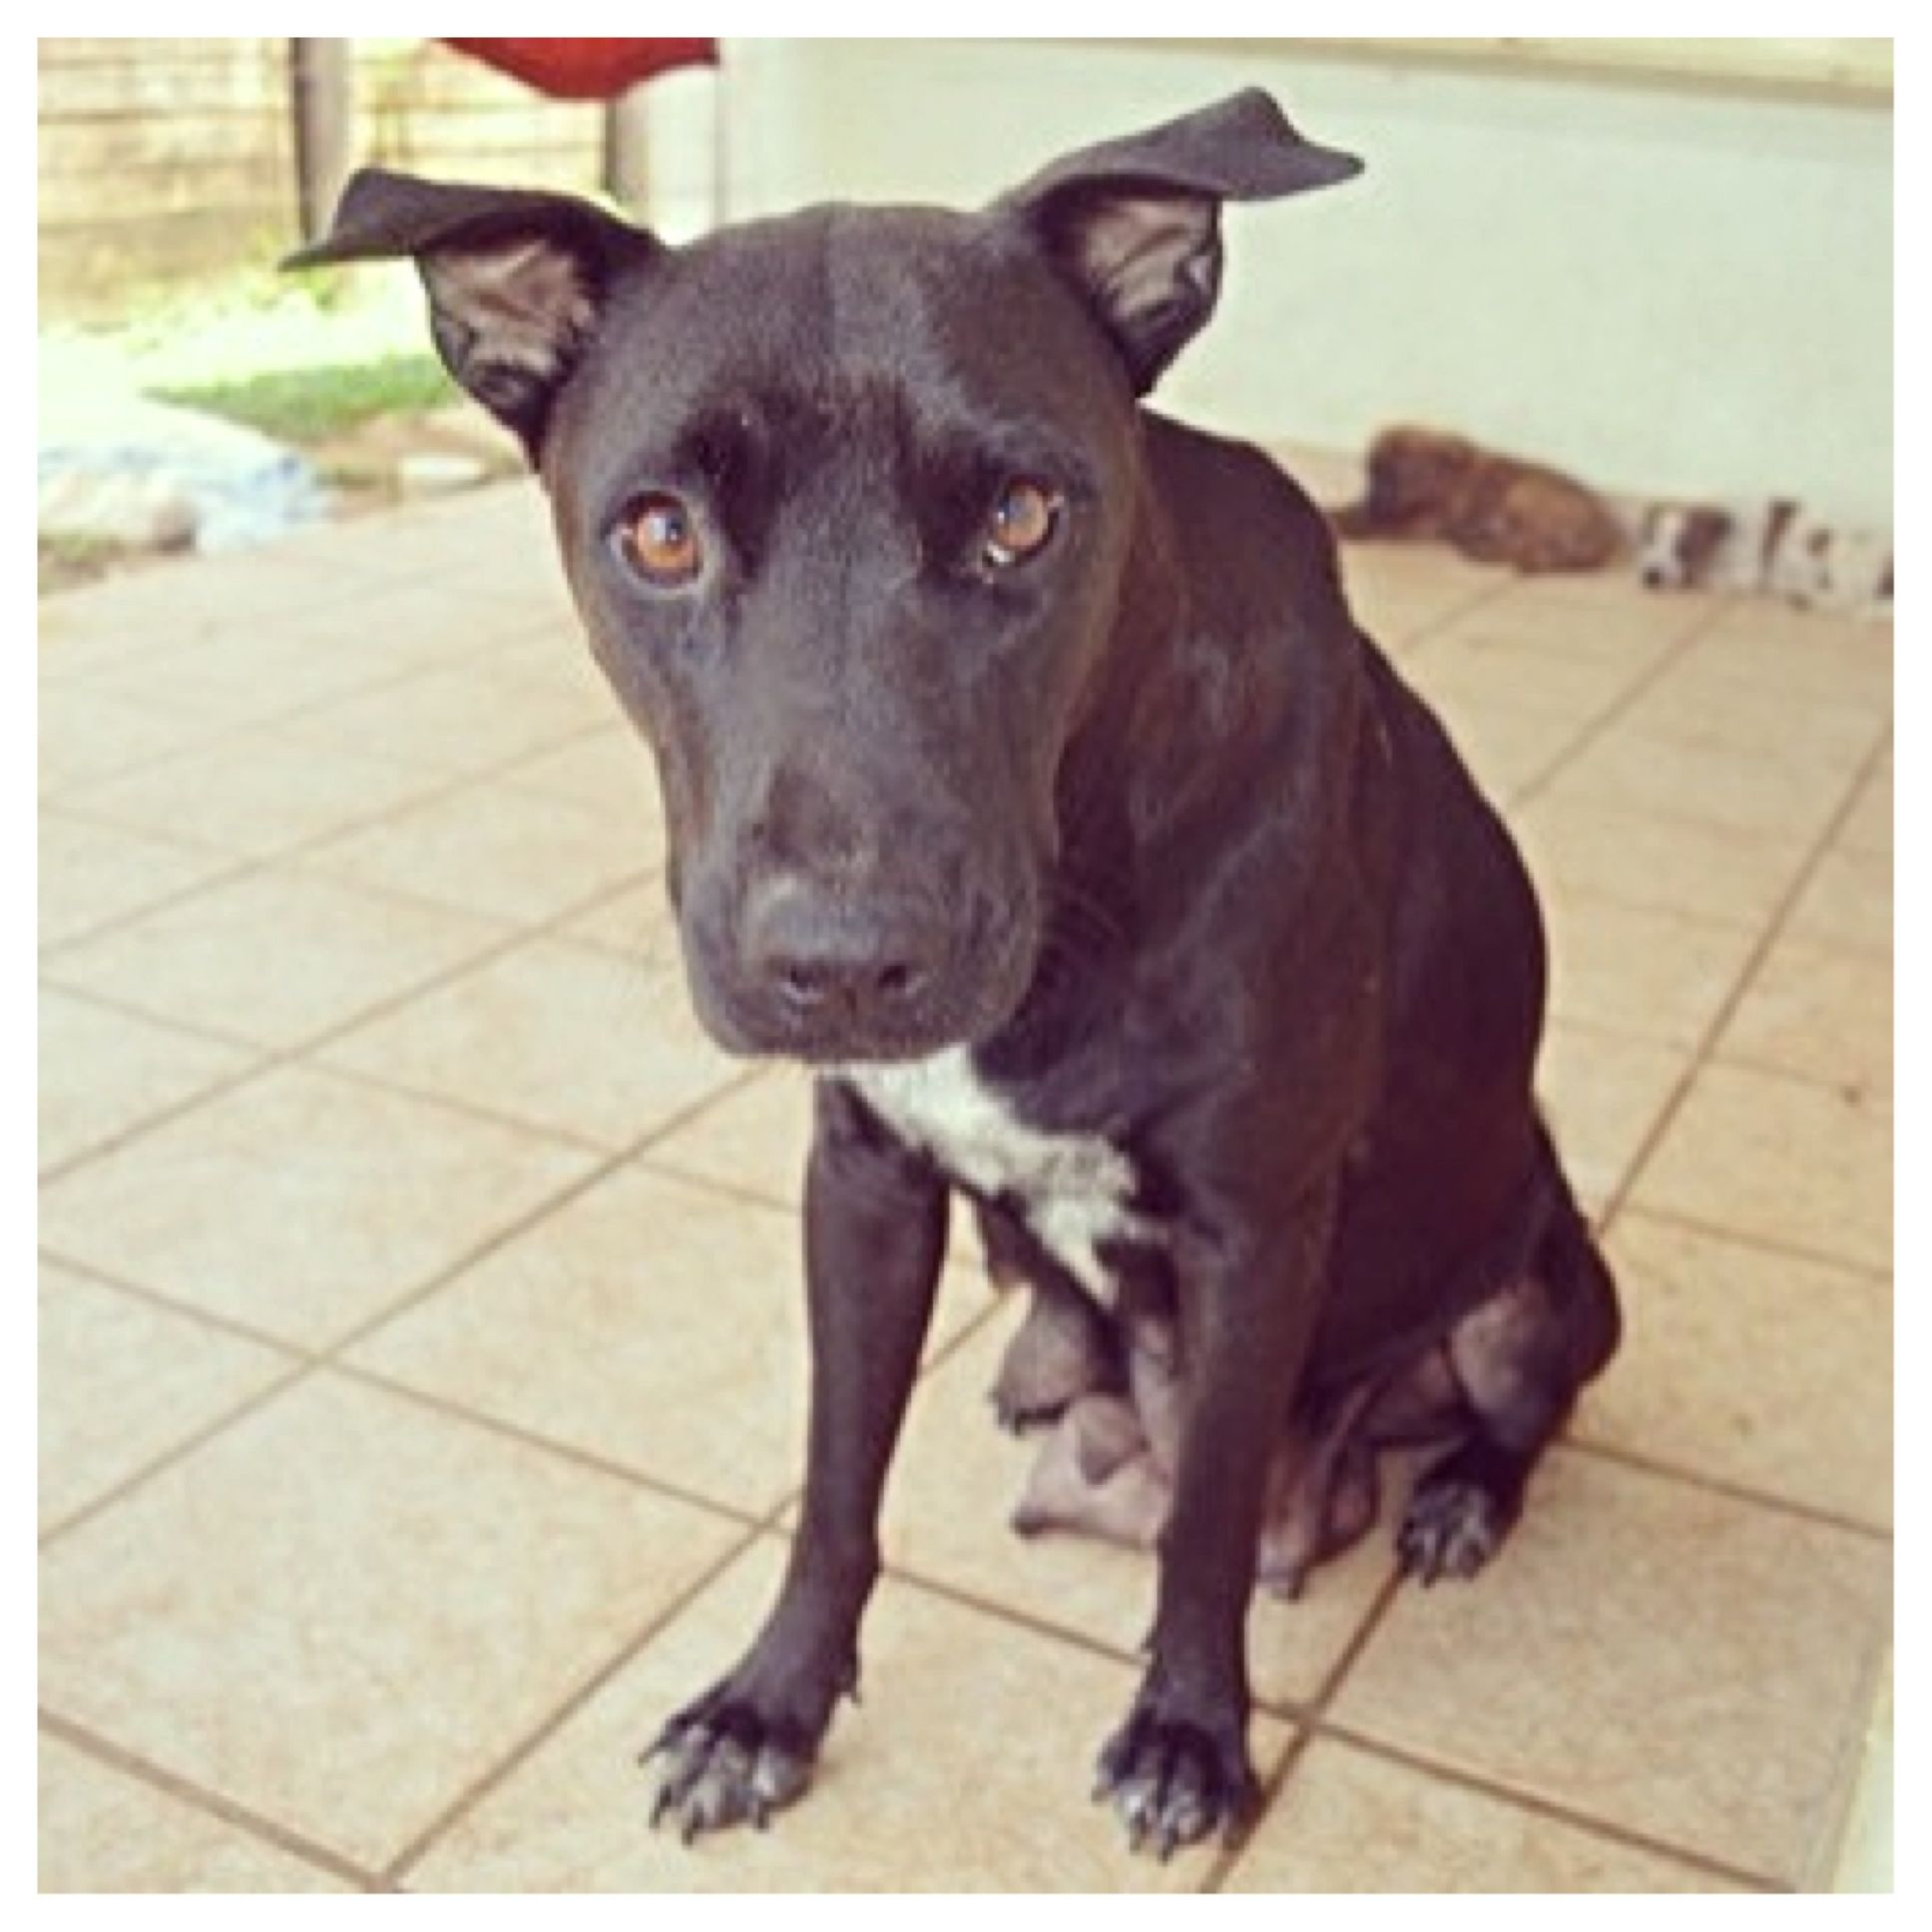 Ebony is an adoptable shelterdog in Australia. Animals